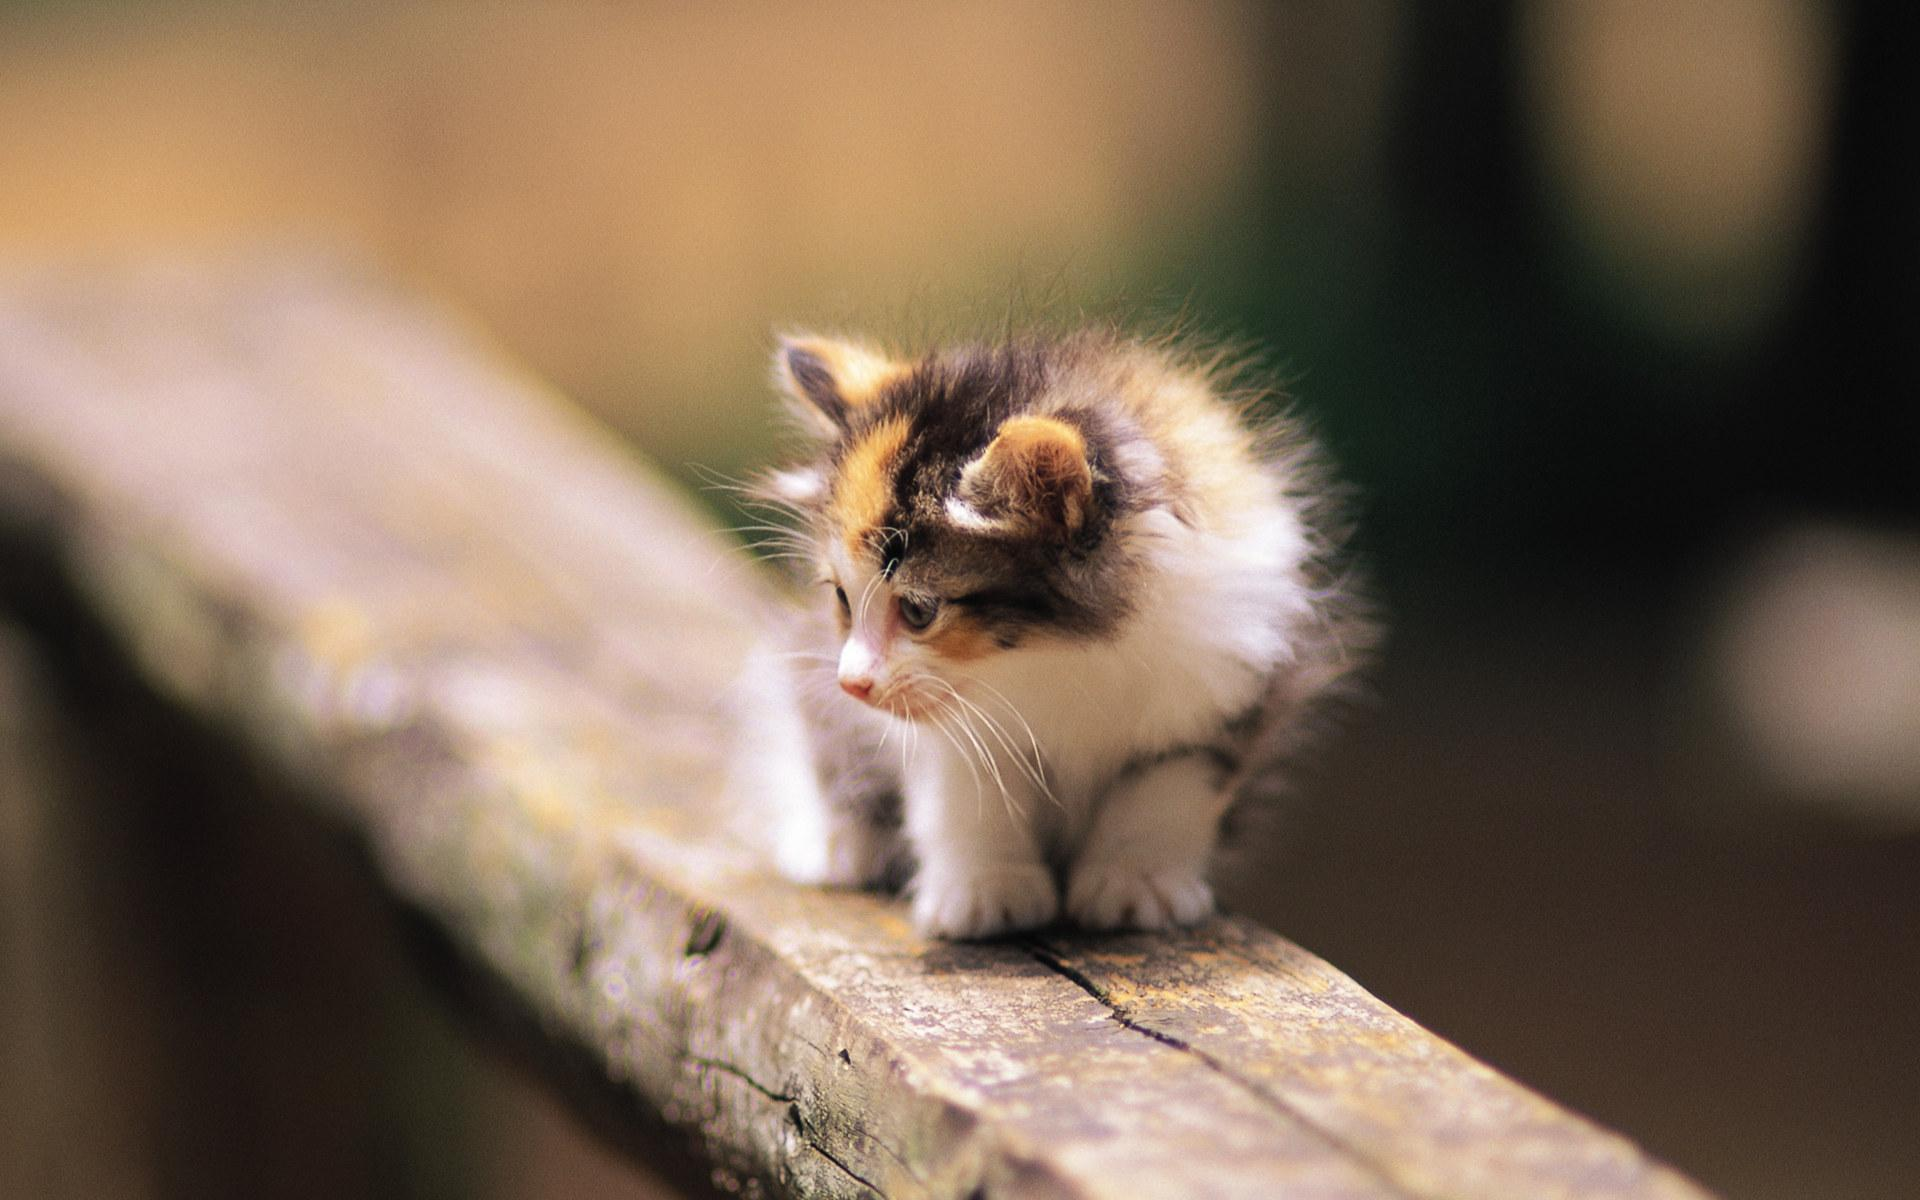 Kittens images Pretty Kittens in yard wallpaper photos 13937766 1920x1200